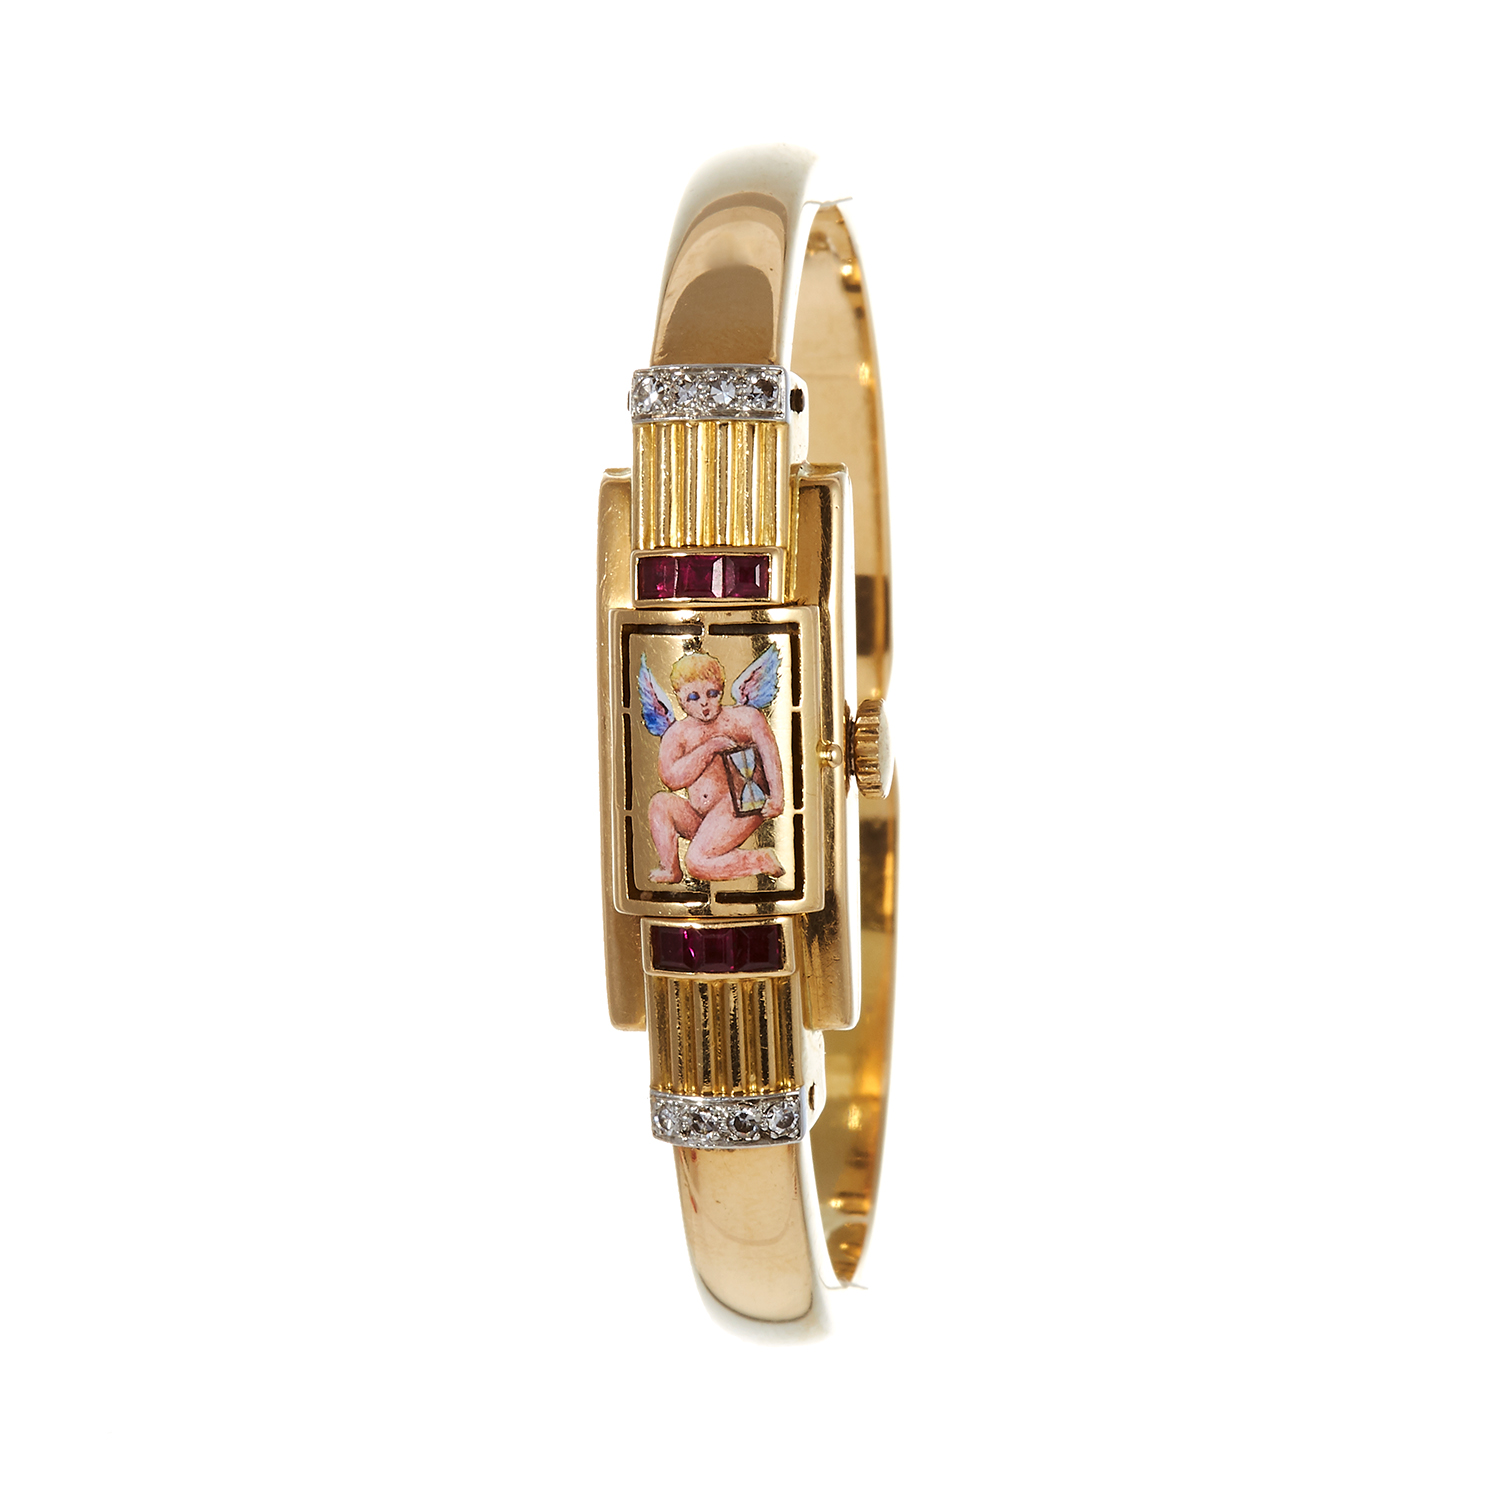 Los 112 - A RUBY, DIAMOND AND ENAMEL COCKTAIL WATCH, CIRCA 1957 in 18ct yellow gold the dial with a hinged,